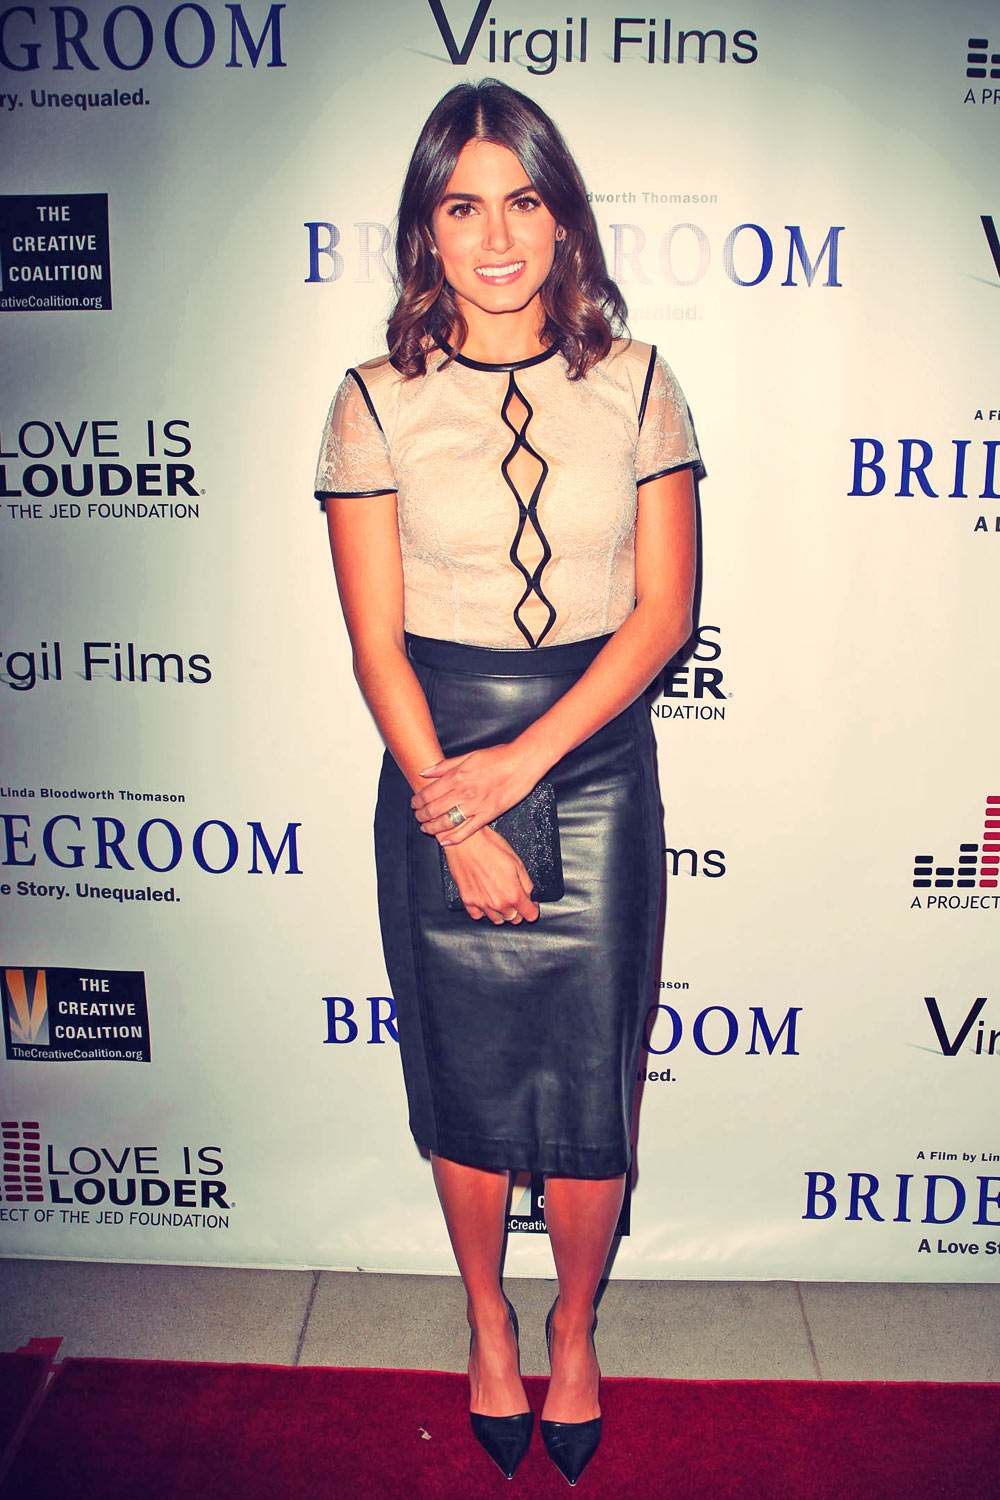 Actress Nikki Reed attends the premiere of Bridegroom held at the AMPAS Samuel Goldwyn Theater on Oc